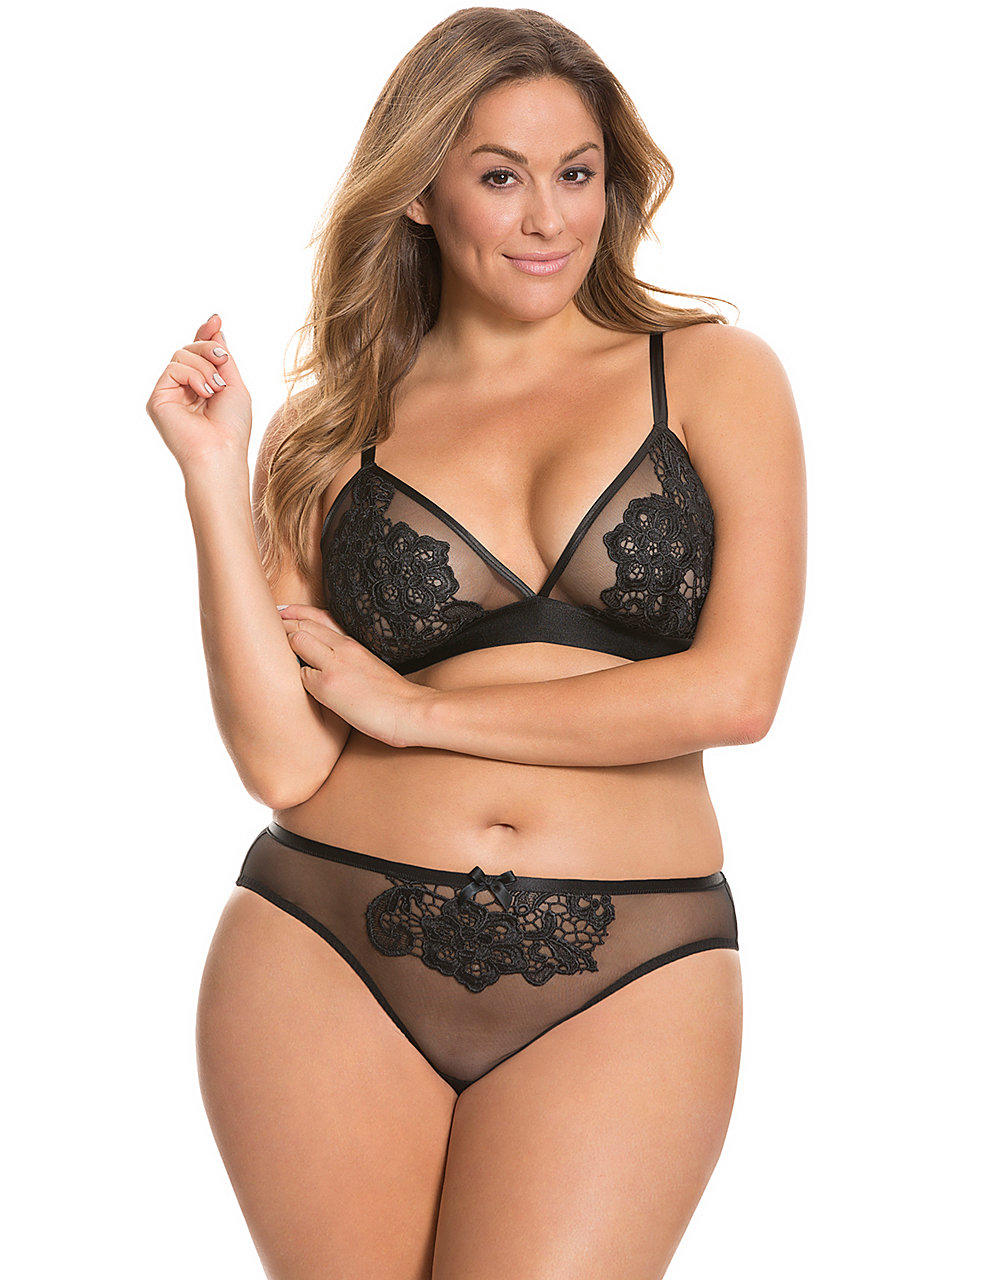 Lane Bryant is the most widely recognized name in specialty plus-size fashion. From the latest looks in clothing and accessories to exclusive Cacique intimates, Lane Bryant .